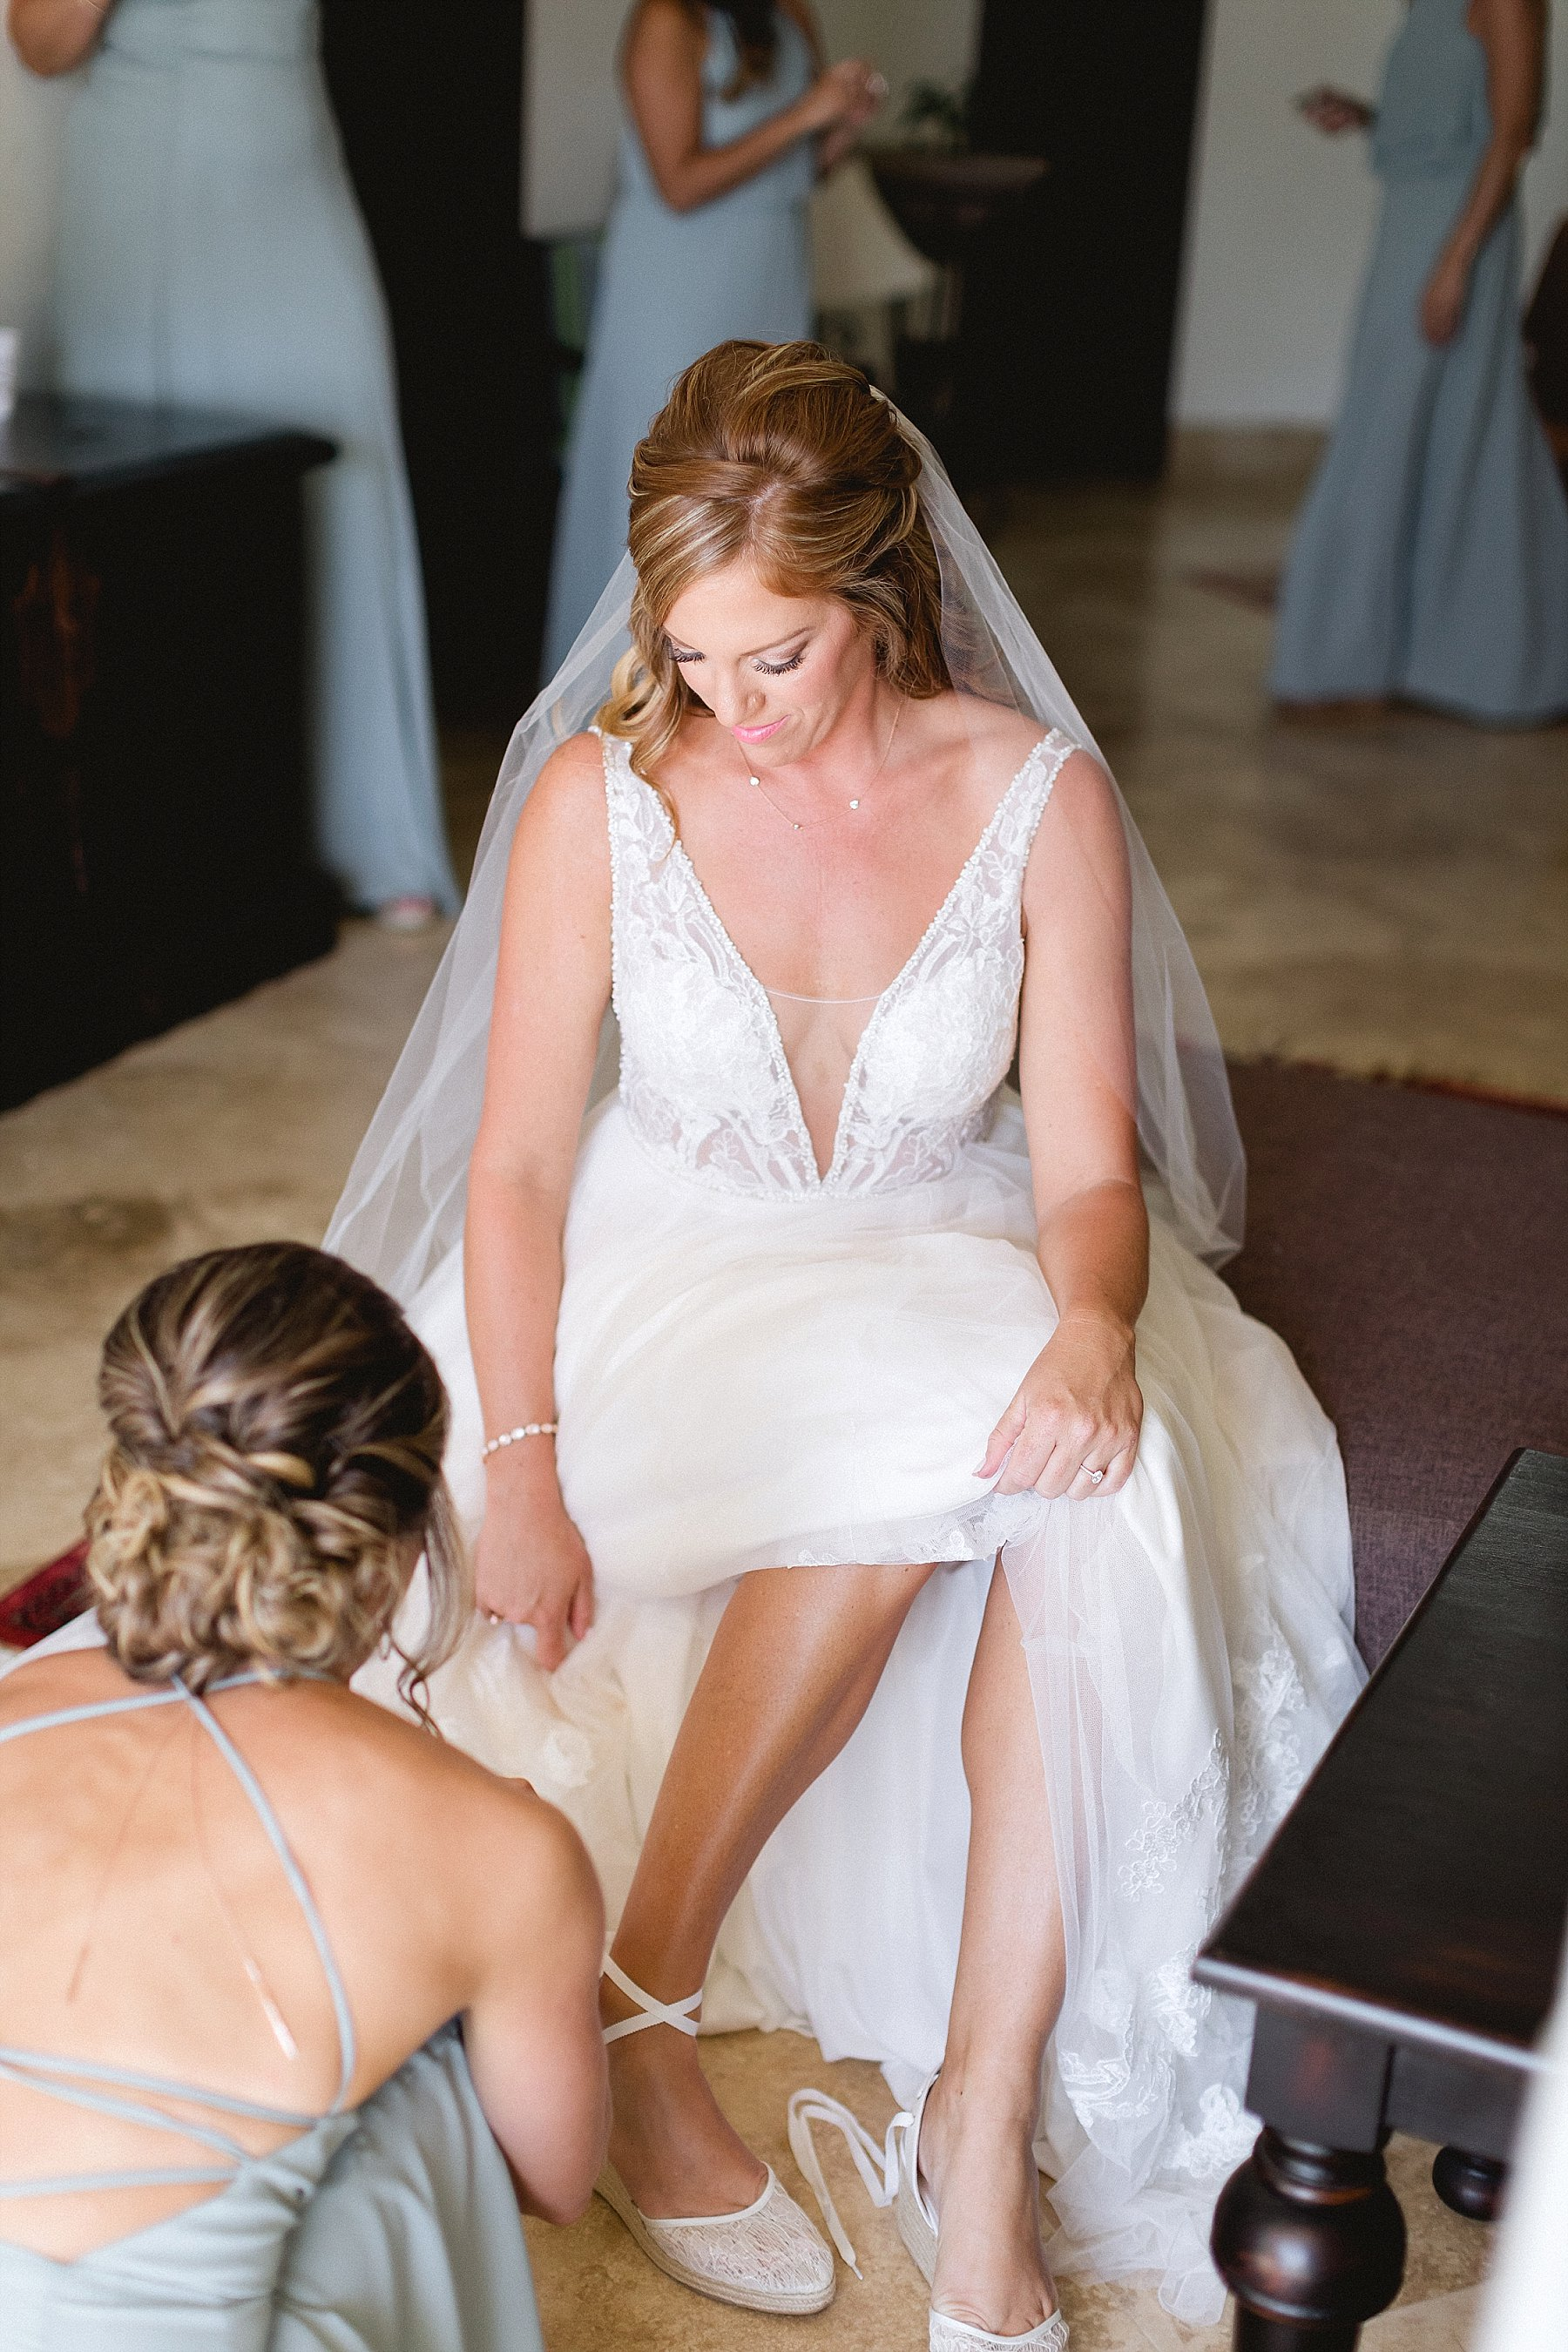 Maid of Honor helping Bride put her shoes on at her Wedding Day. They were getting ready at Hacienda Encantada in Cabo San Lucas, Mexico, and theiir wedding was at Flora Farms. Wedding PLanning by Cabo Wedding Services and Photography by Sara Richardson